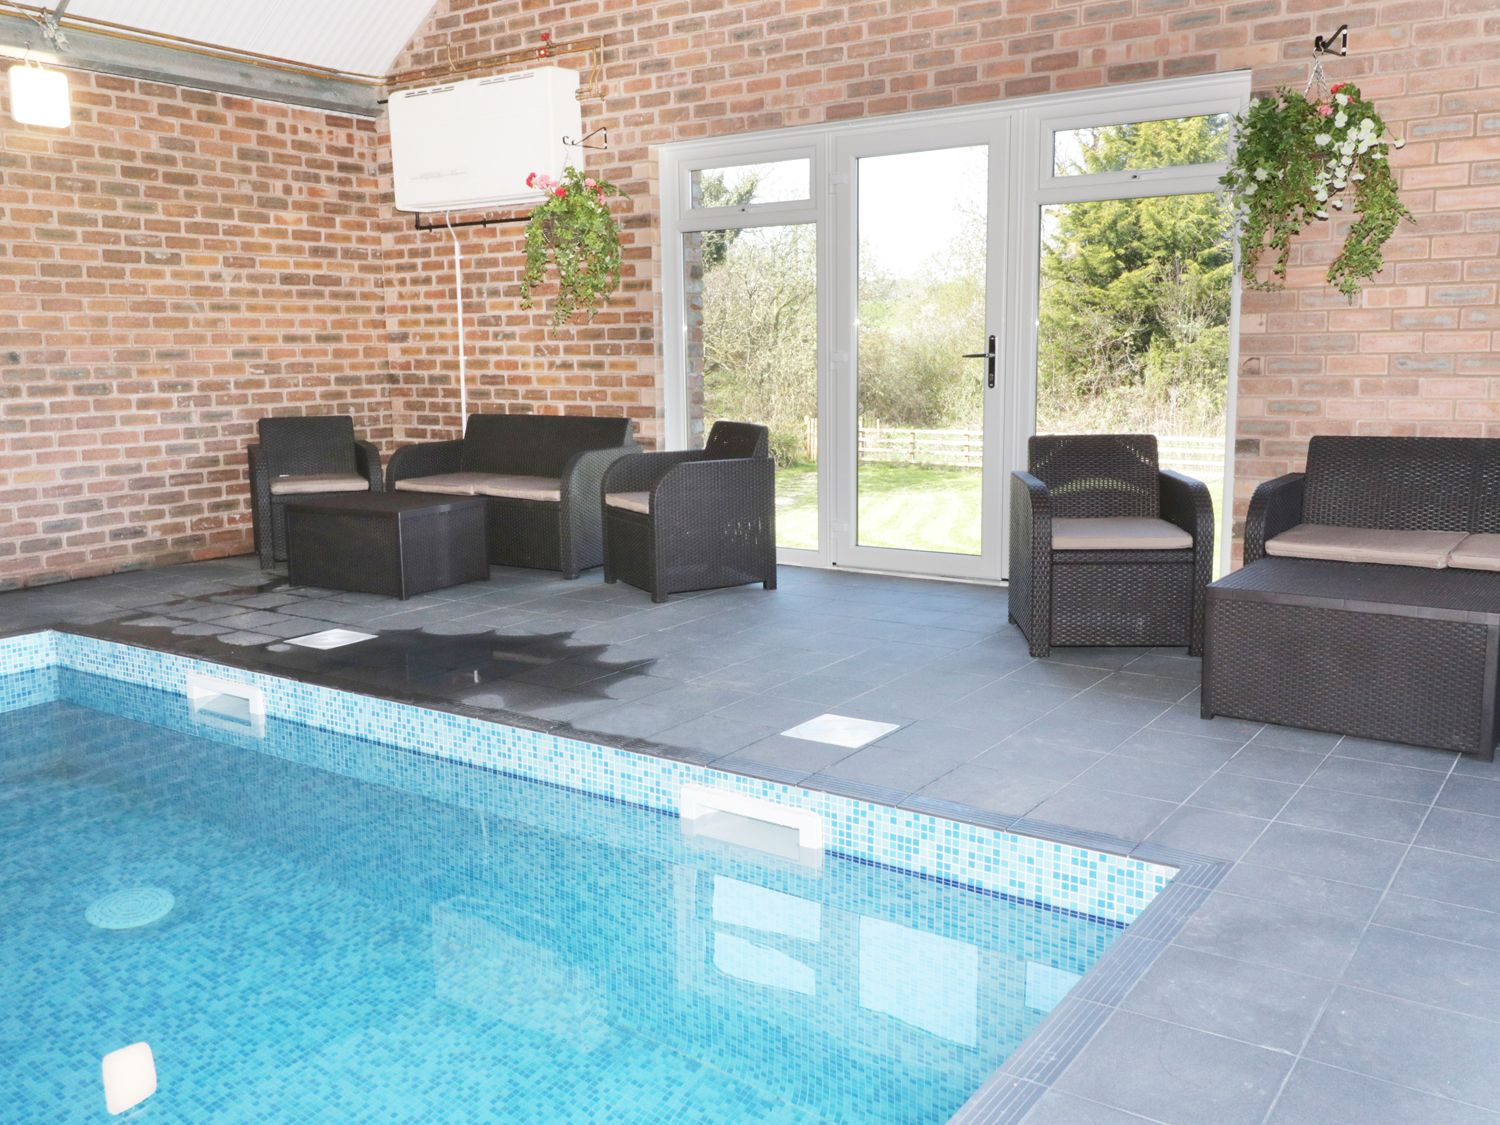 Home Farm Swimming Pool Seating Area